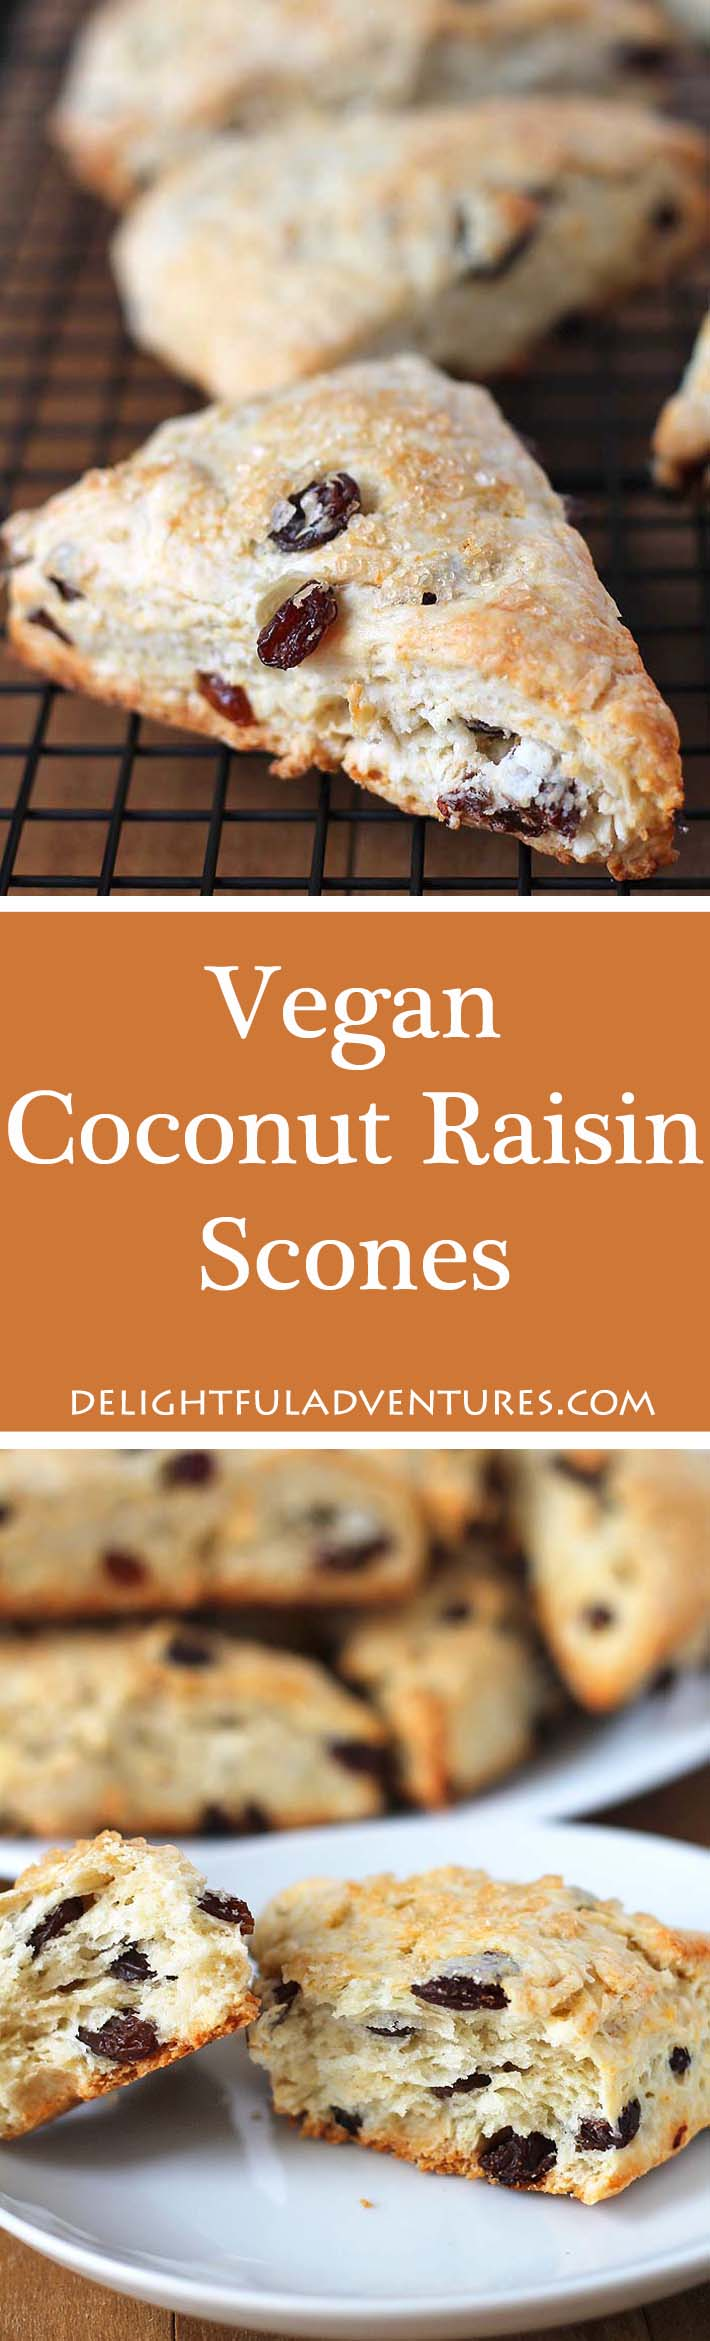 These Coconut Raisin Vegan Scones have the perfect texture and are wonderful to enjoy with tea. They're also ideal for serving at breakfast or brunch.